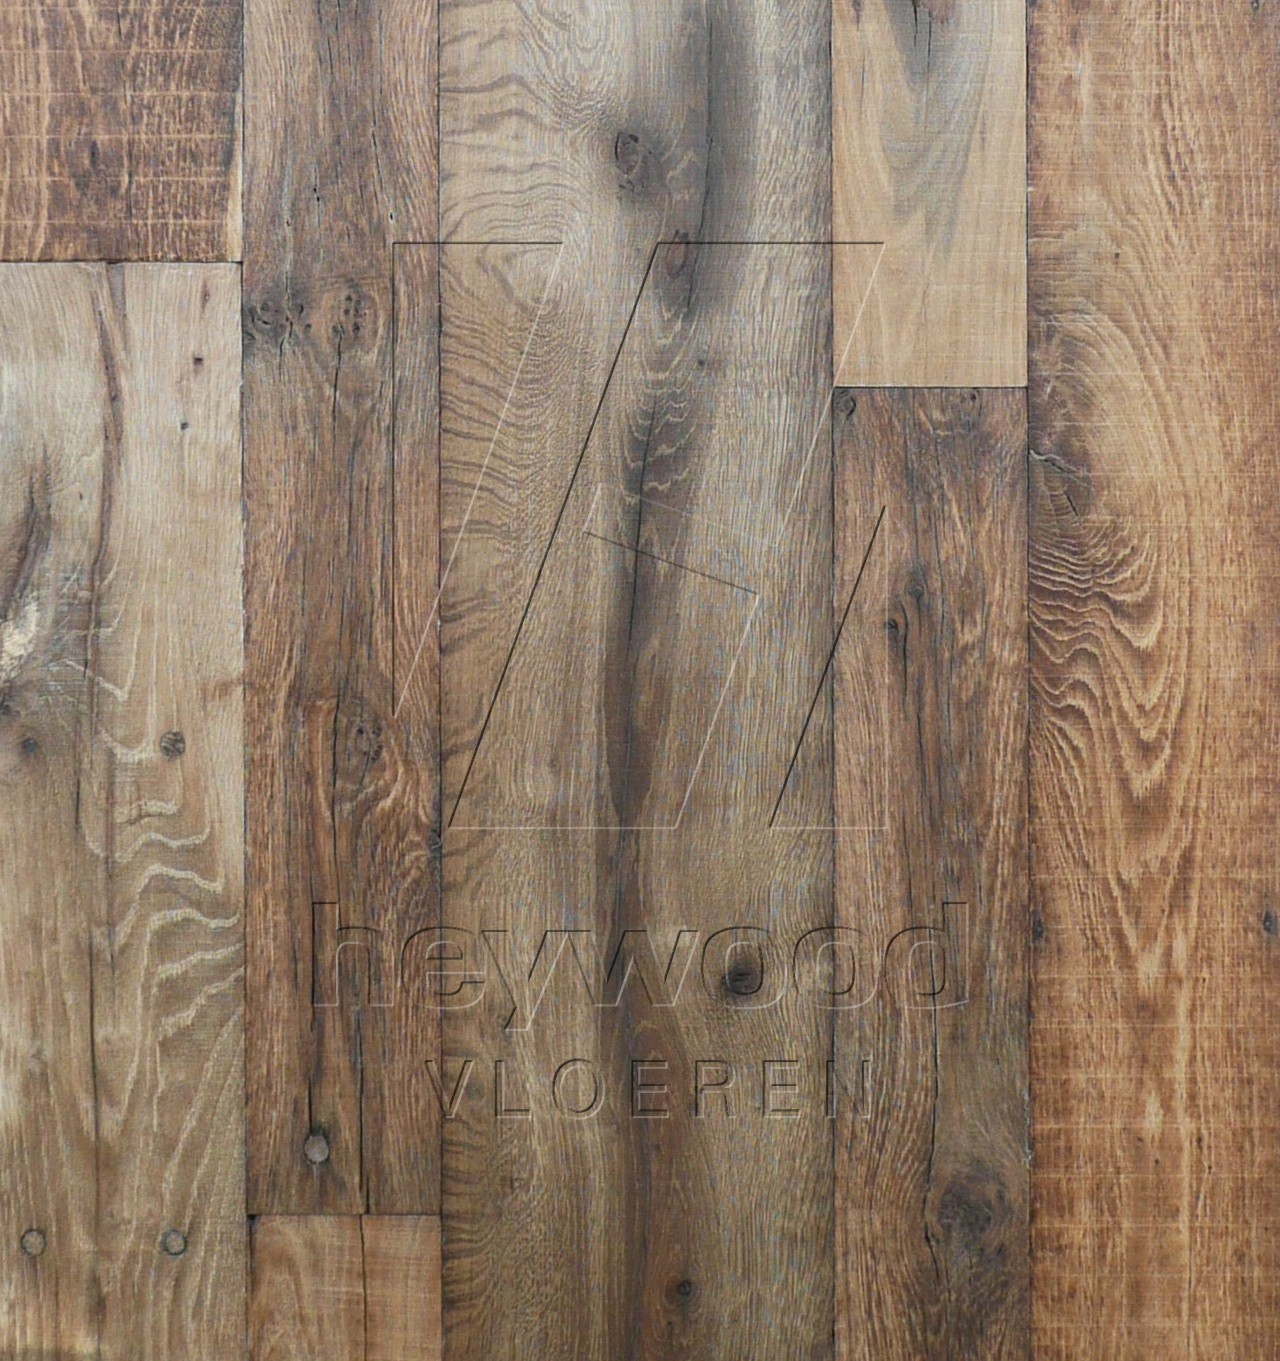 'Old Brewery' Reclaimed Oak (mixed widths, 80-200 years old, insides, hardwax finished) in Plank INSIDES (Brushed 2nd cut) of Old Reclaimed Wood